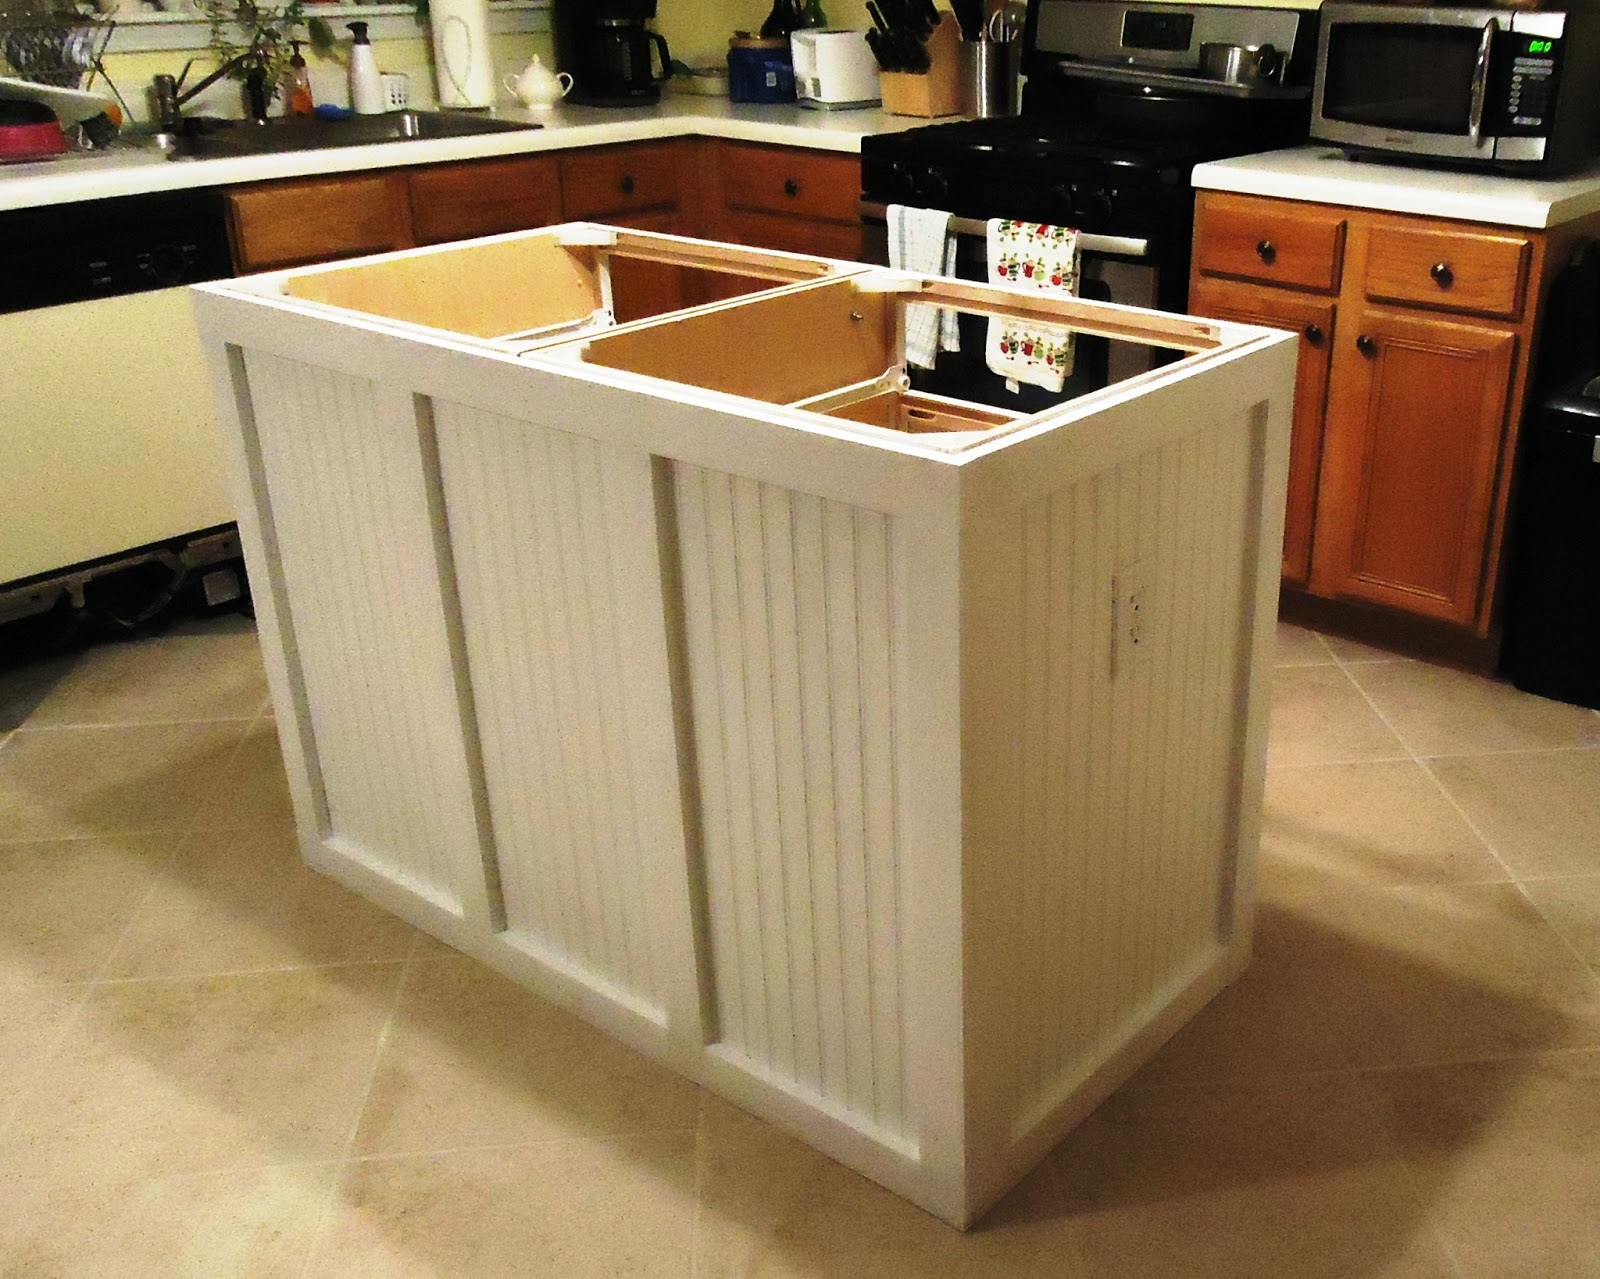 Uncategorized Kitchen Island Ideas Diy 28 kitchen islands diy ana white island walking to retirement the island